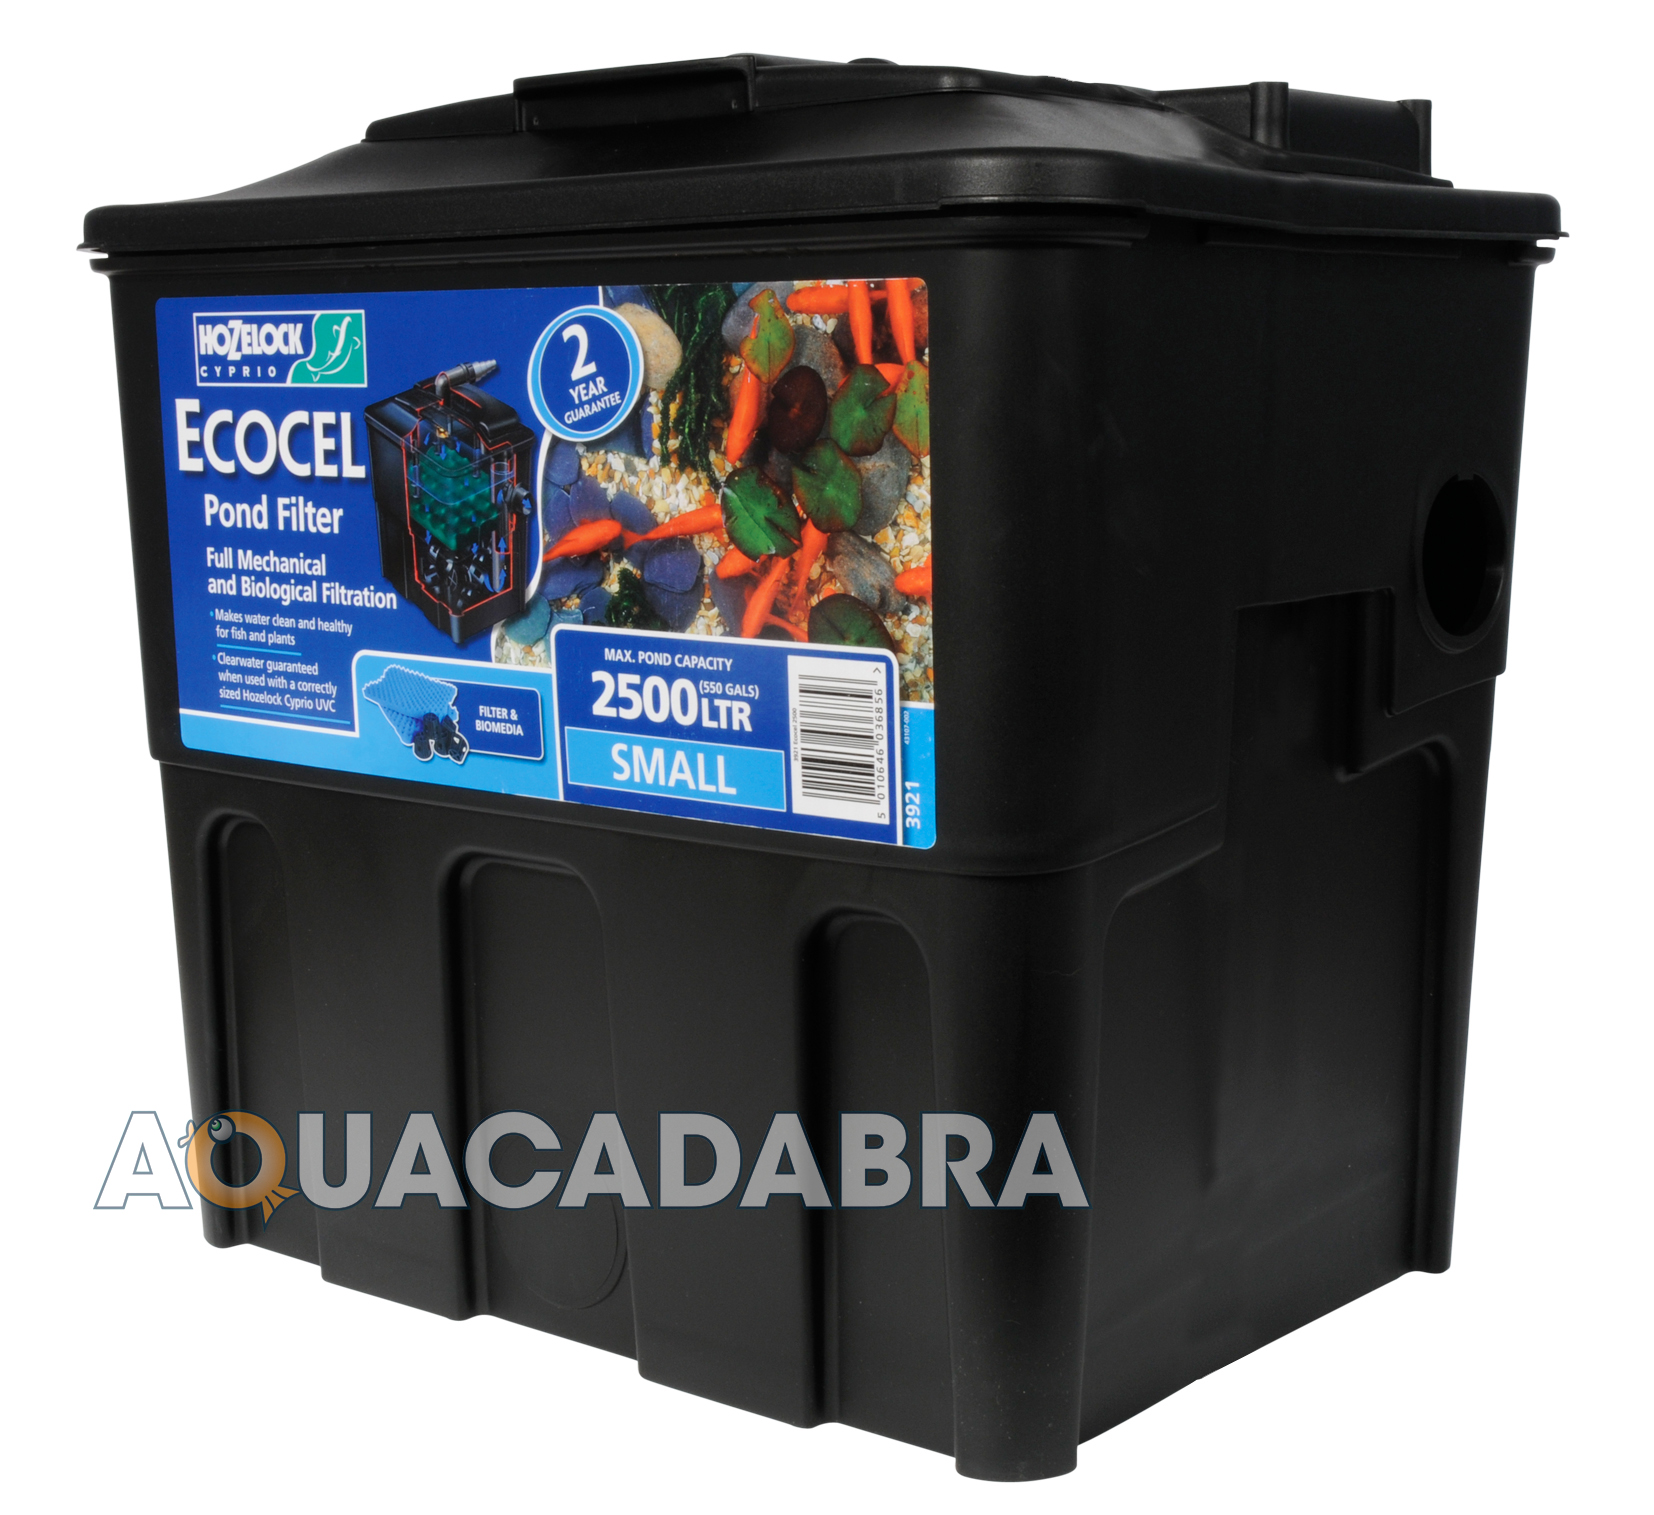 Hozelock ecocel 2500 pond filter replaces the 2200 for Garden fish pond filters